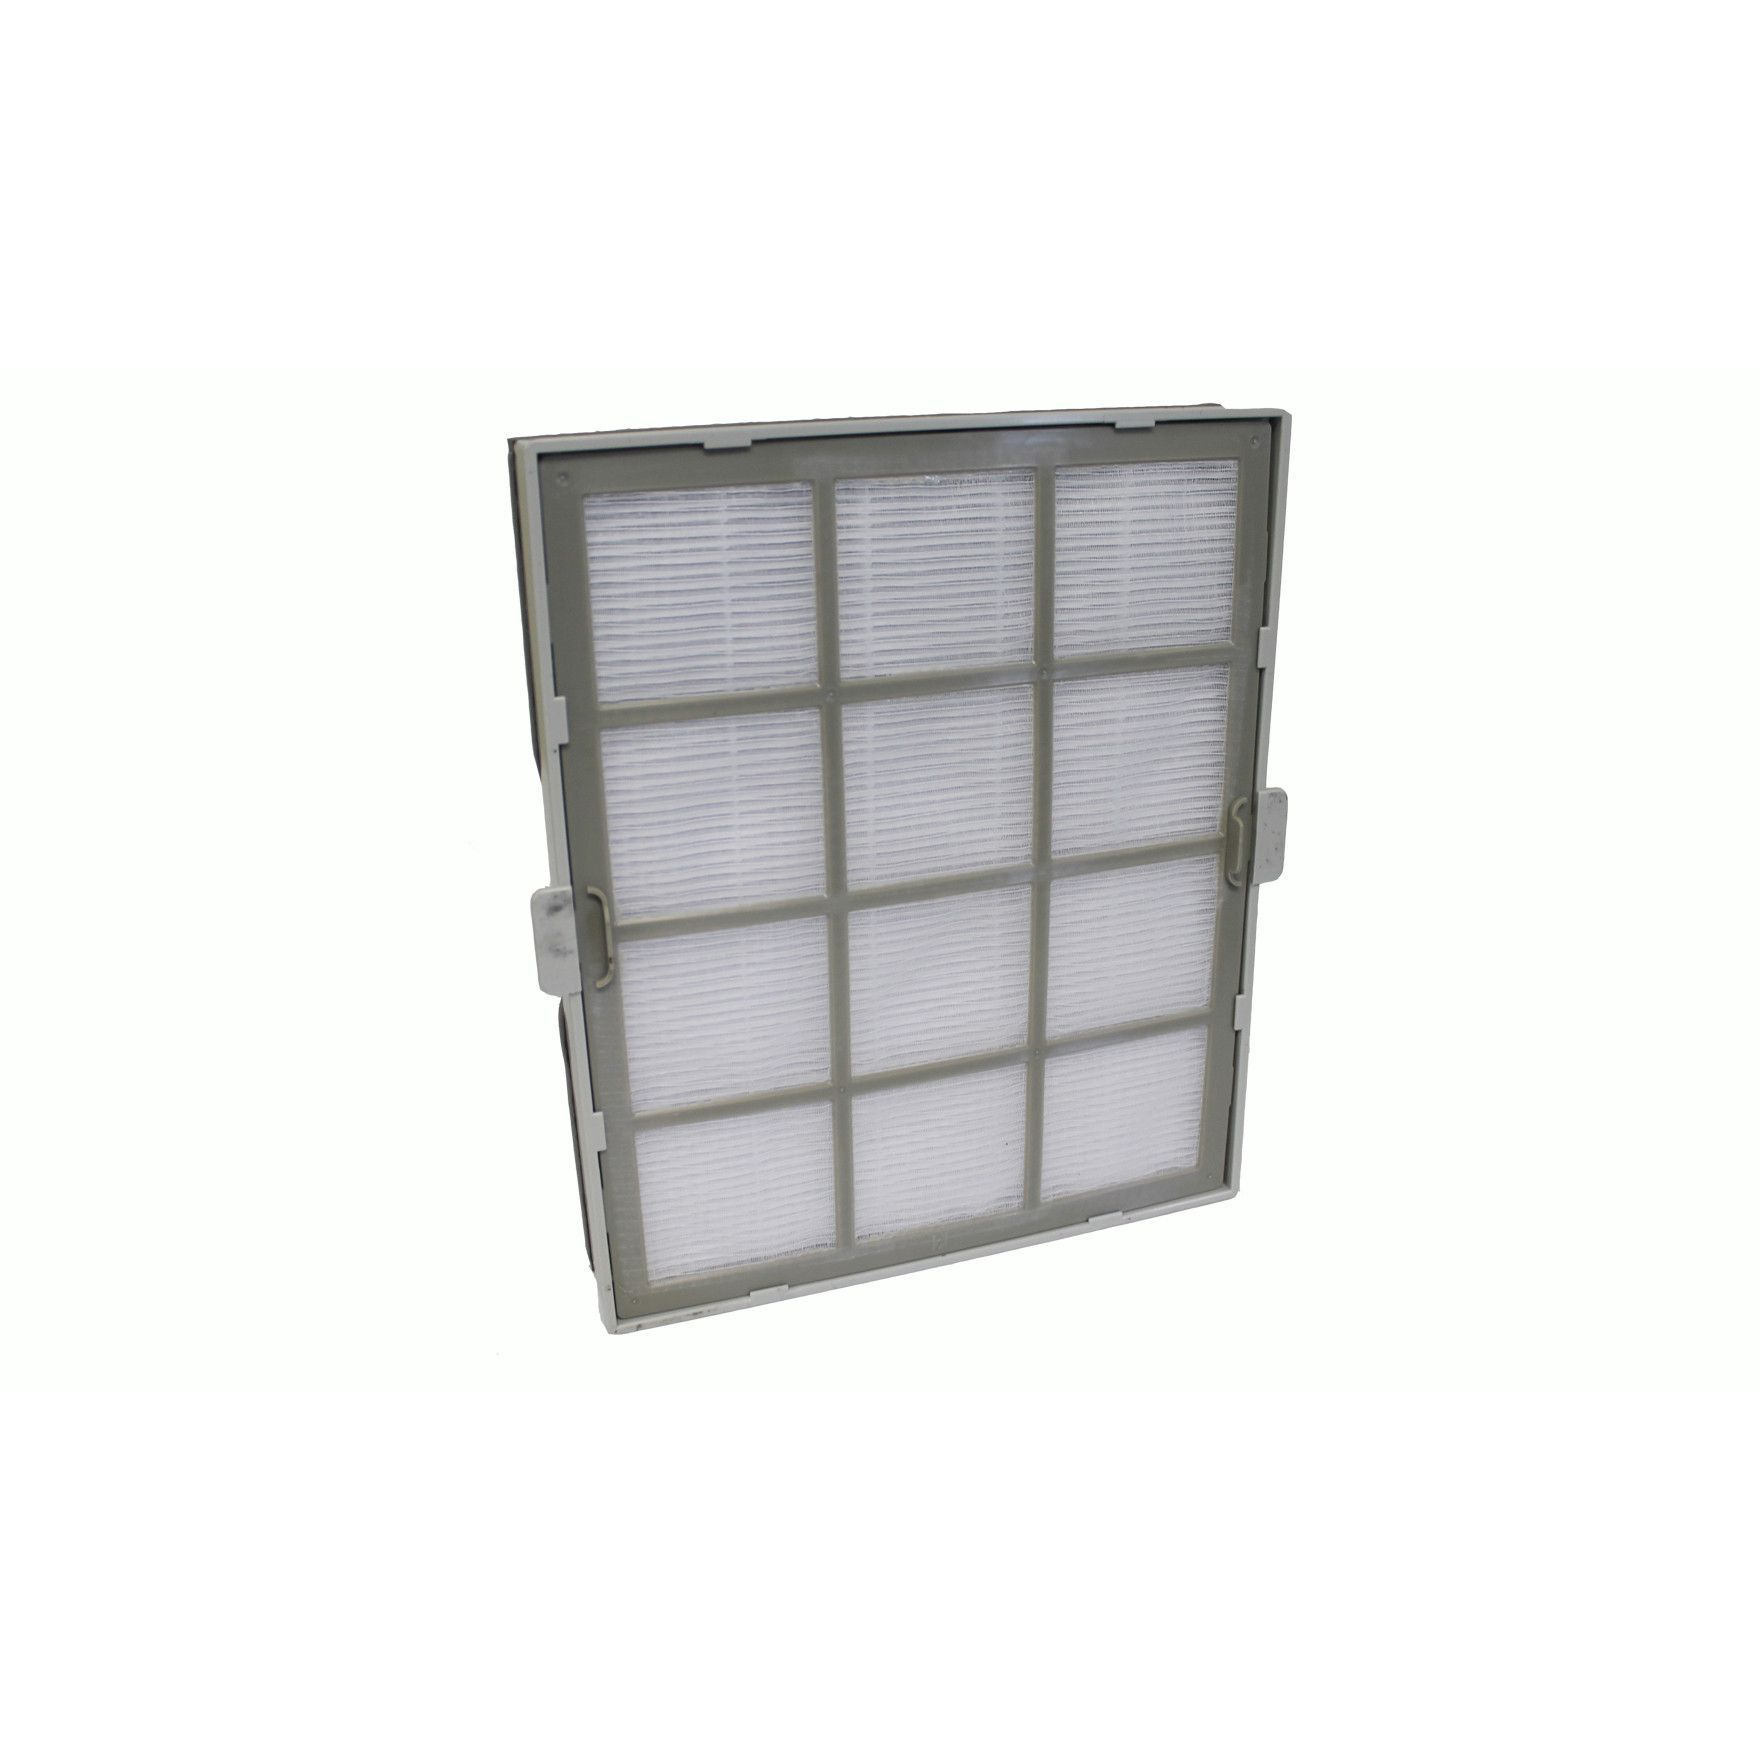 Replacement for Graco 4 Gallon Humidifier Filter Fits